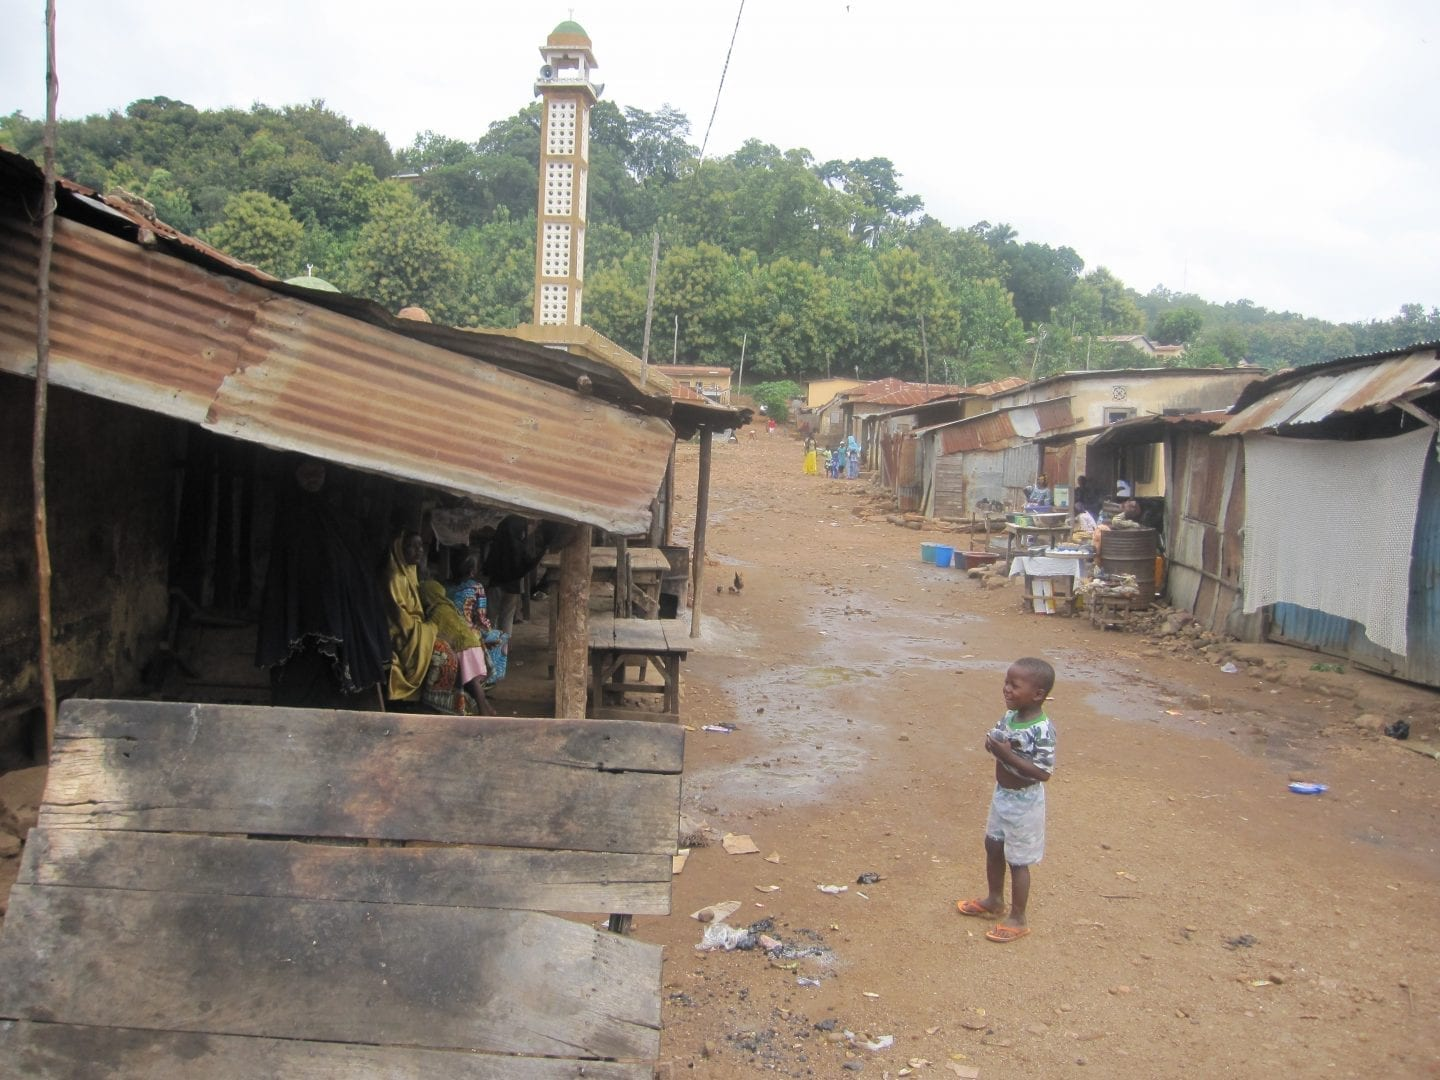 Street-in-small-village-in-Togo